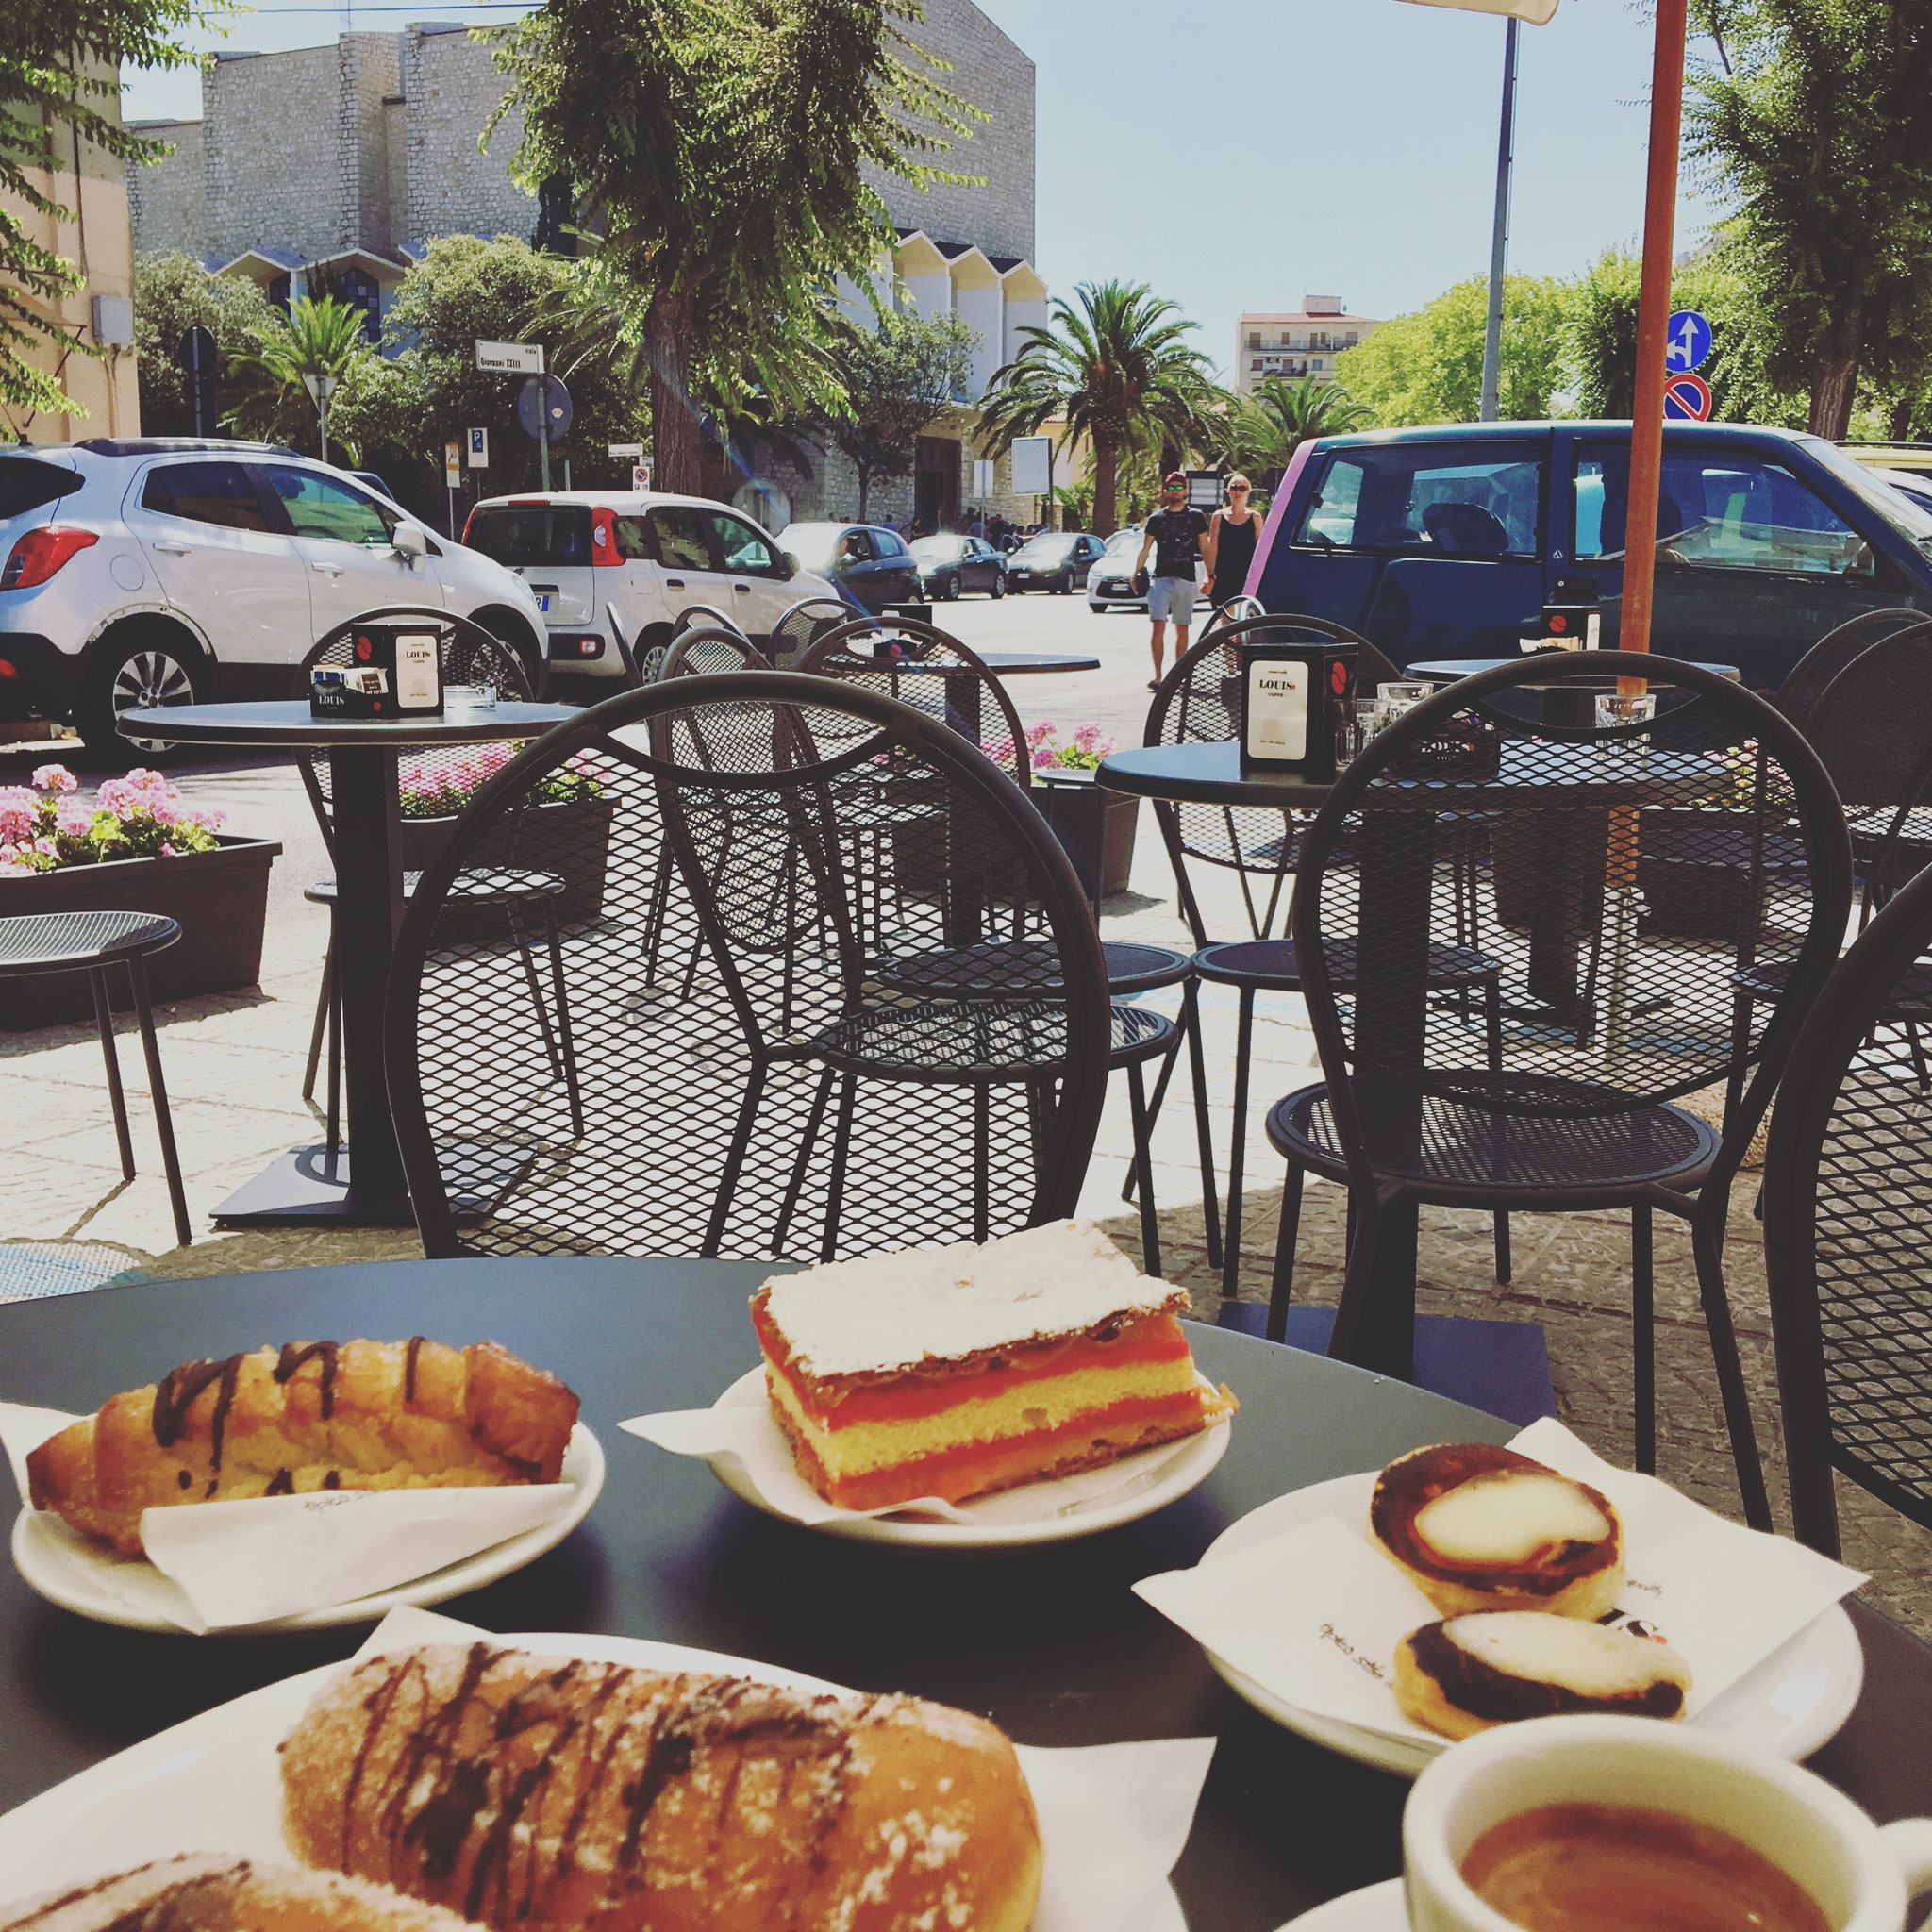 Sip of coffee and piece of cake at Costanzo Caffeteria